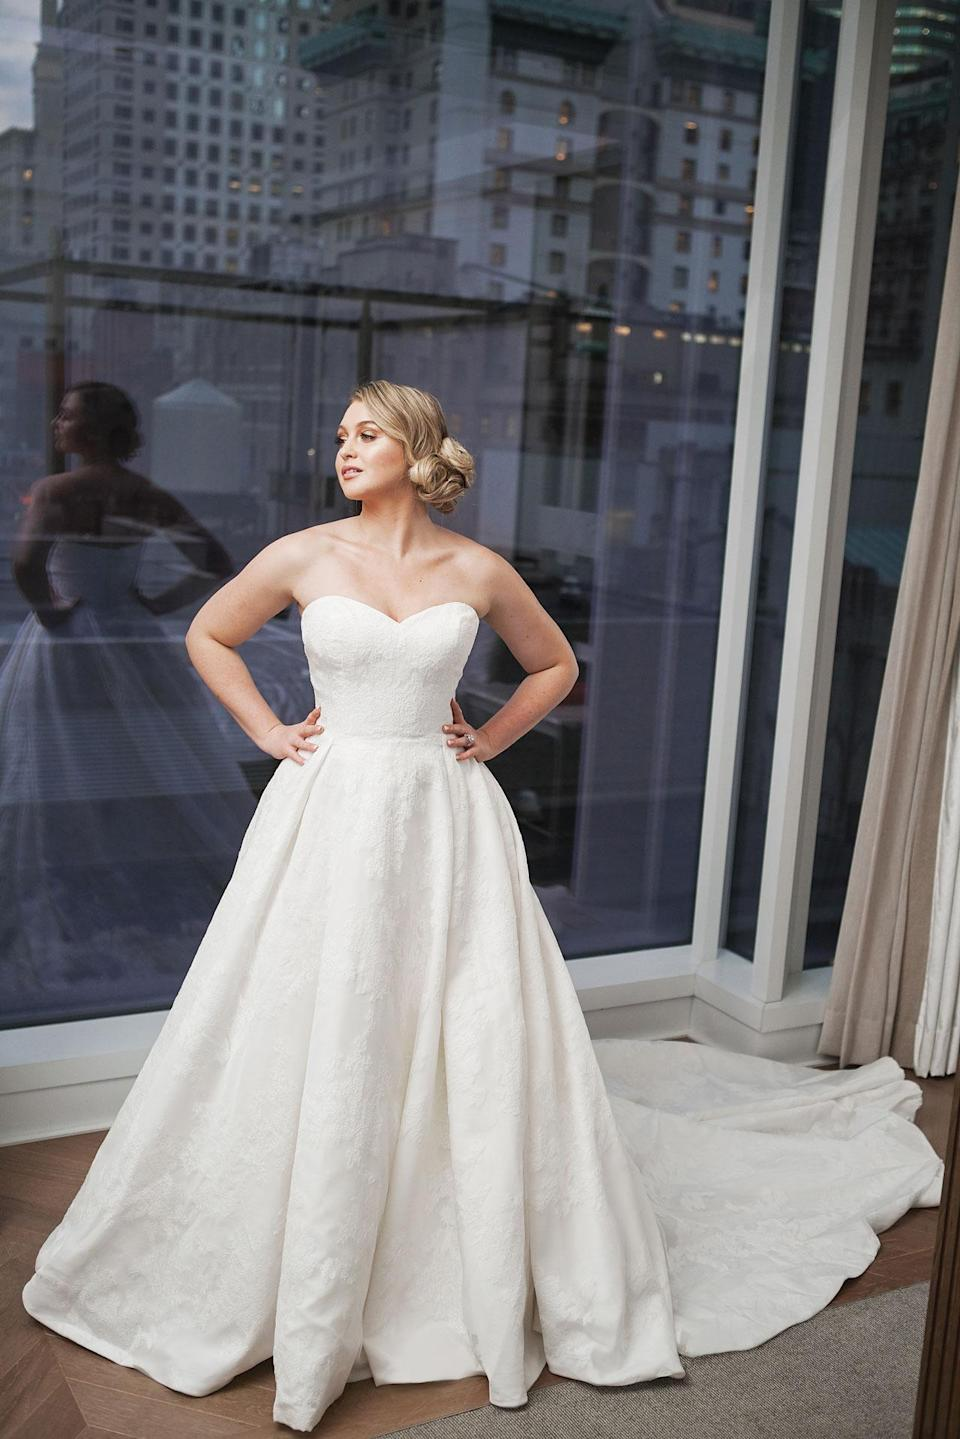 <p>Lawrence wears a classic strapless lace wedding dress by Justin Alexander. (Photo: courtesy of Justin Alexander) </p>